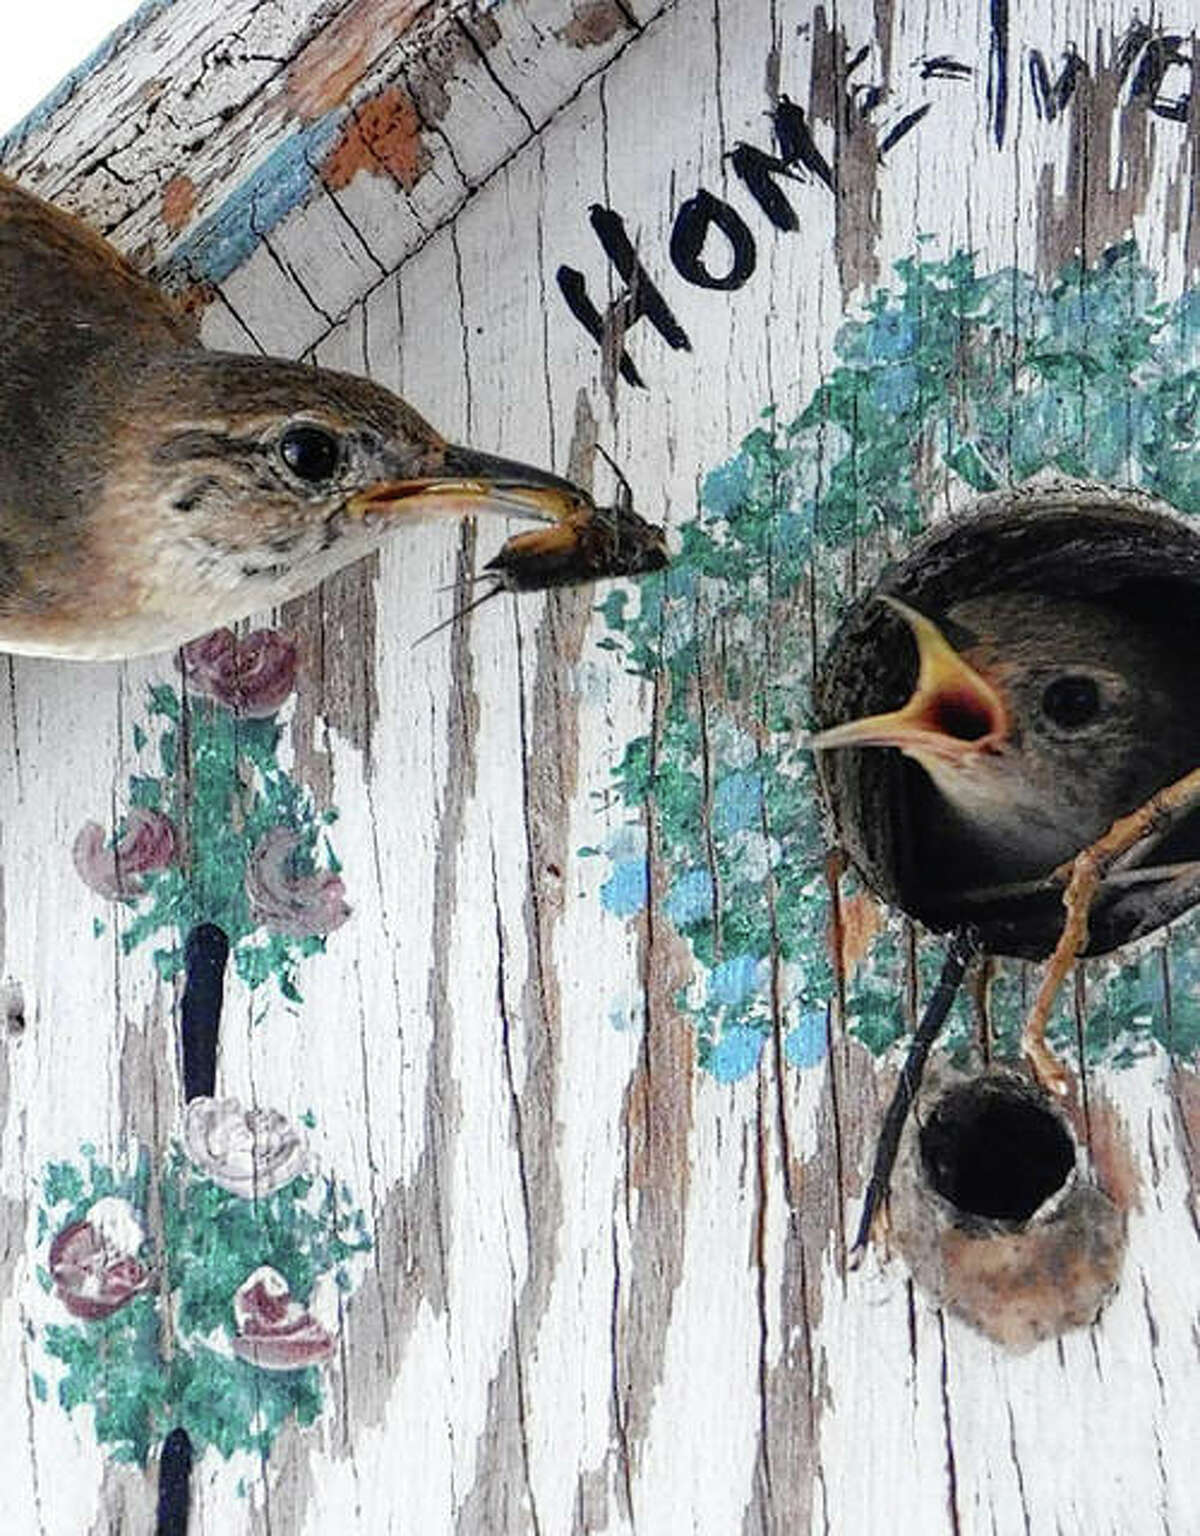 Reader Mary Lacy was sitting on her porch and captured a baby bird receiving food from its parent.